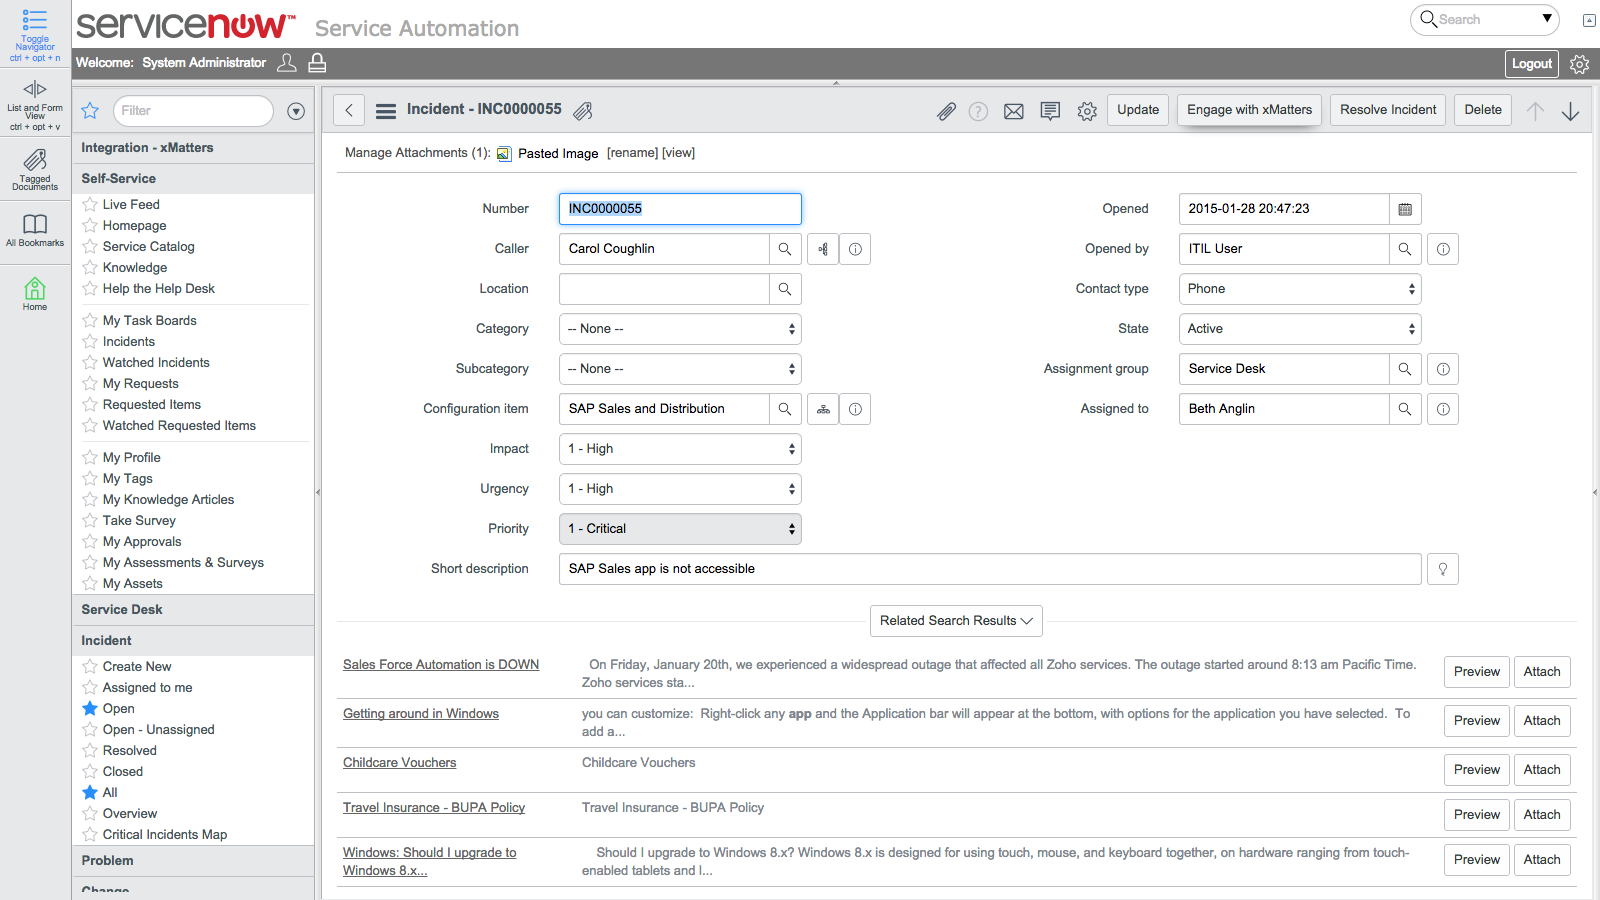 servicenow enterprise service management screenshot